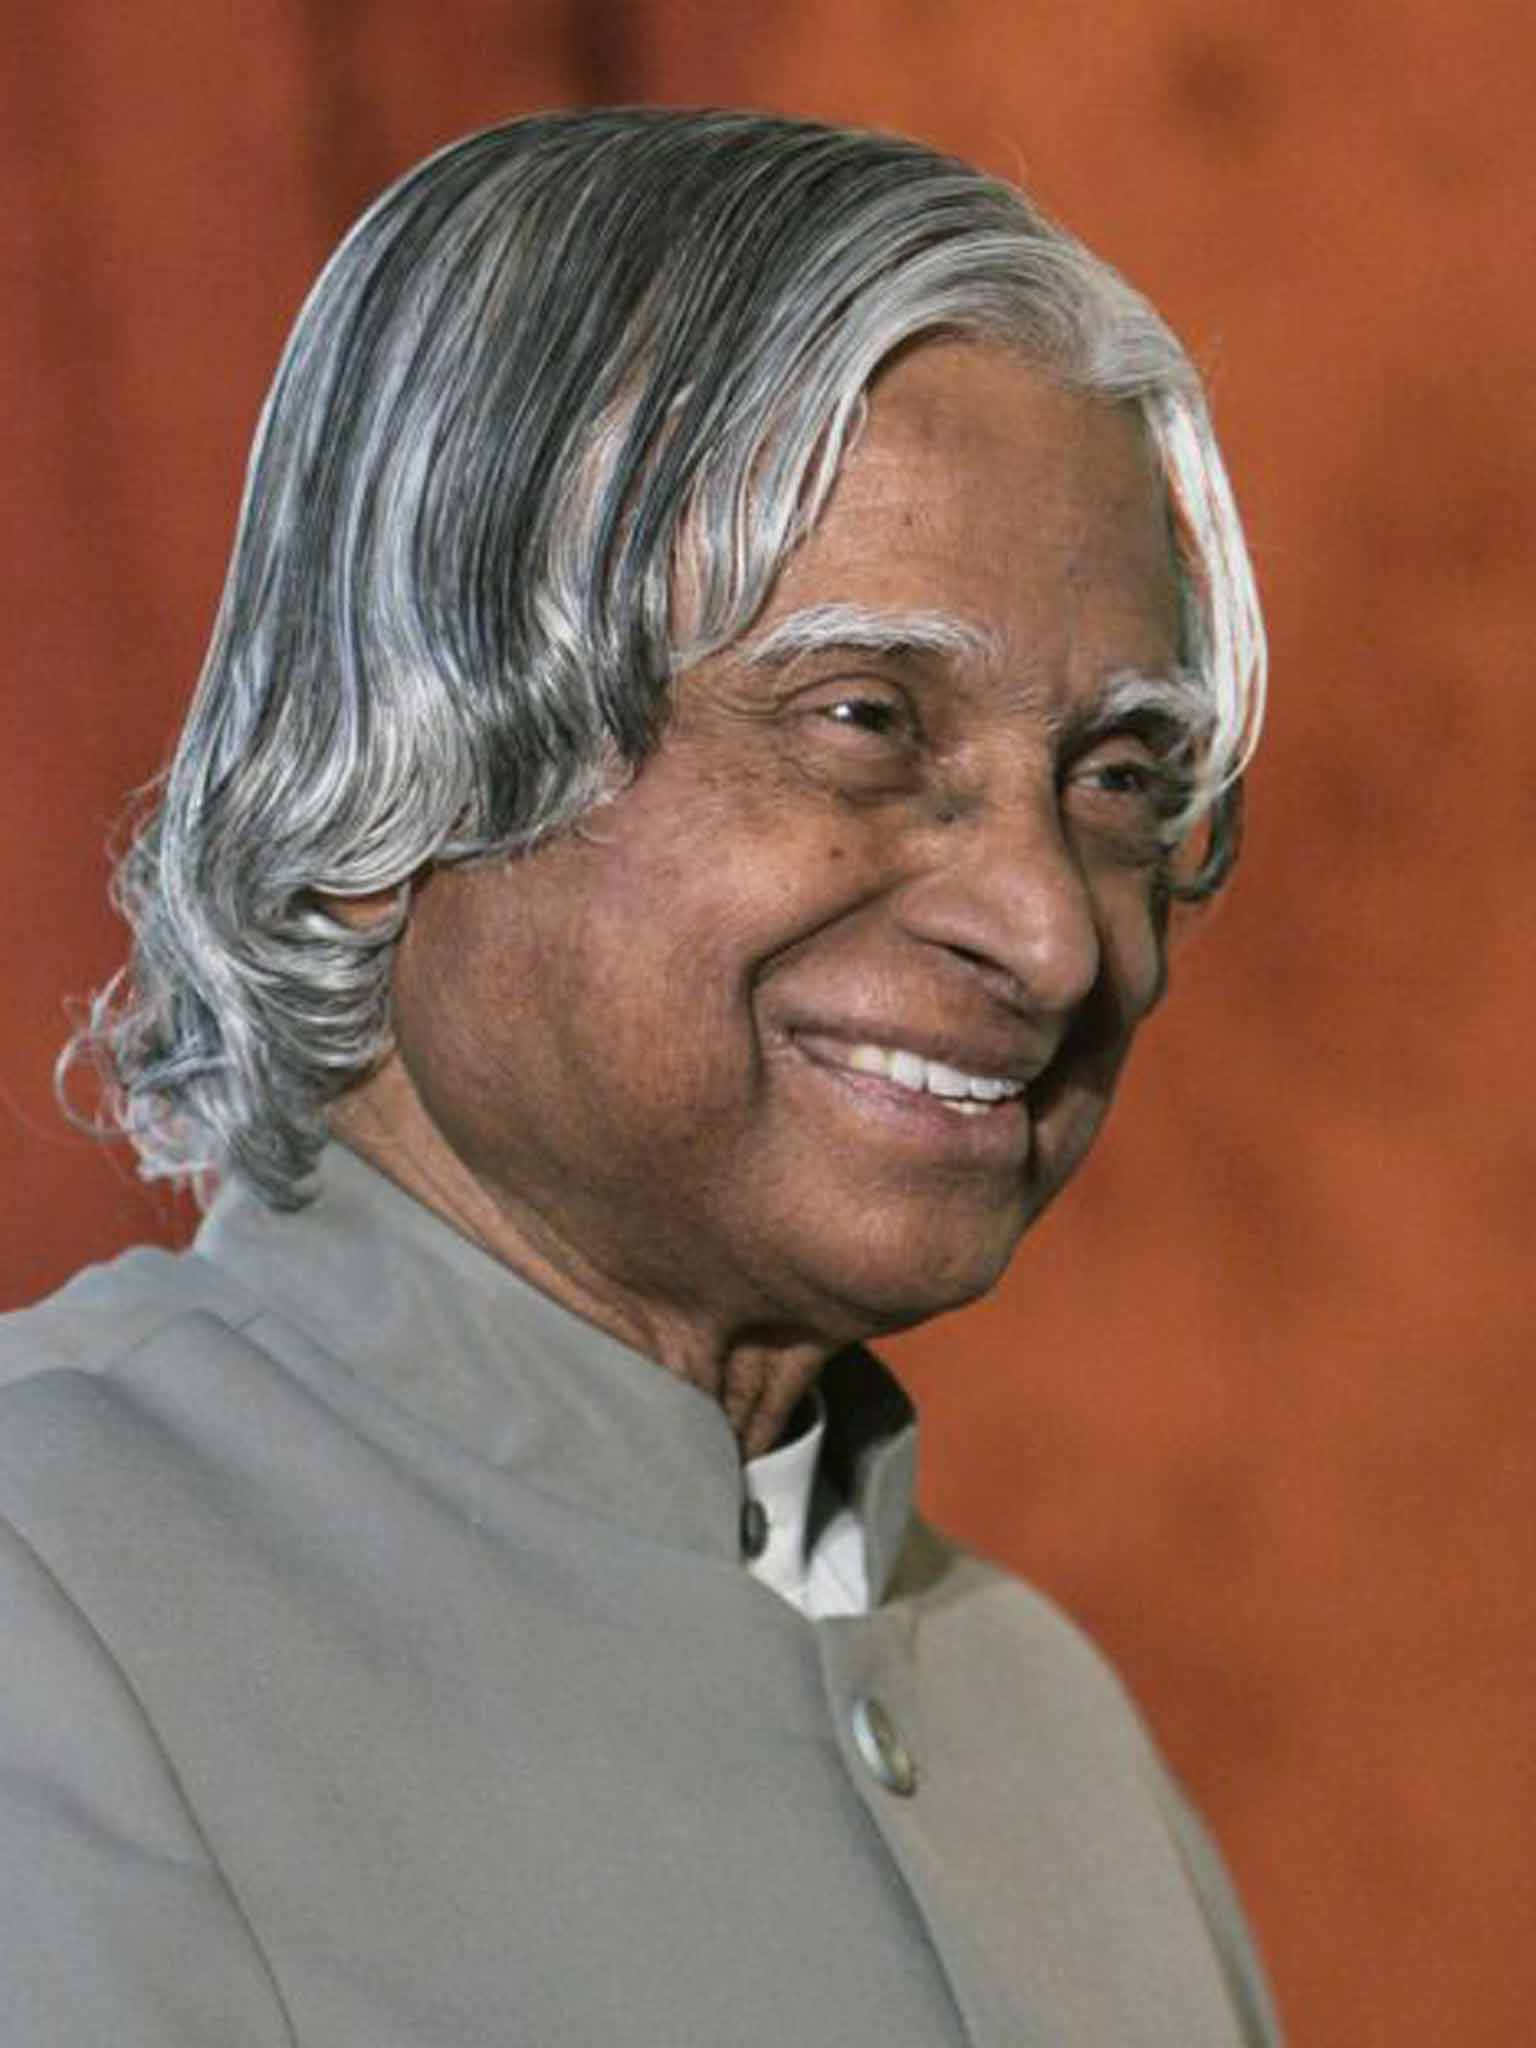 apj abdul kalam physicist known as the father of s missile apj abdul kalam physicist known as the father of s missile programme who also served as the country s president the